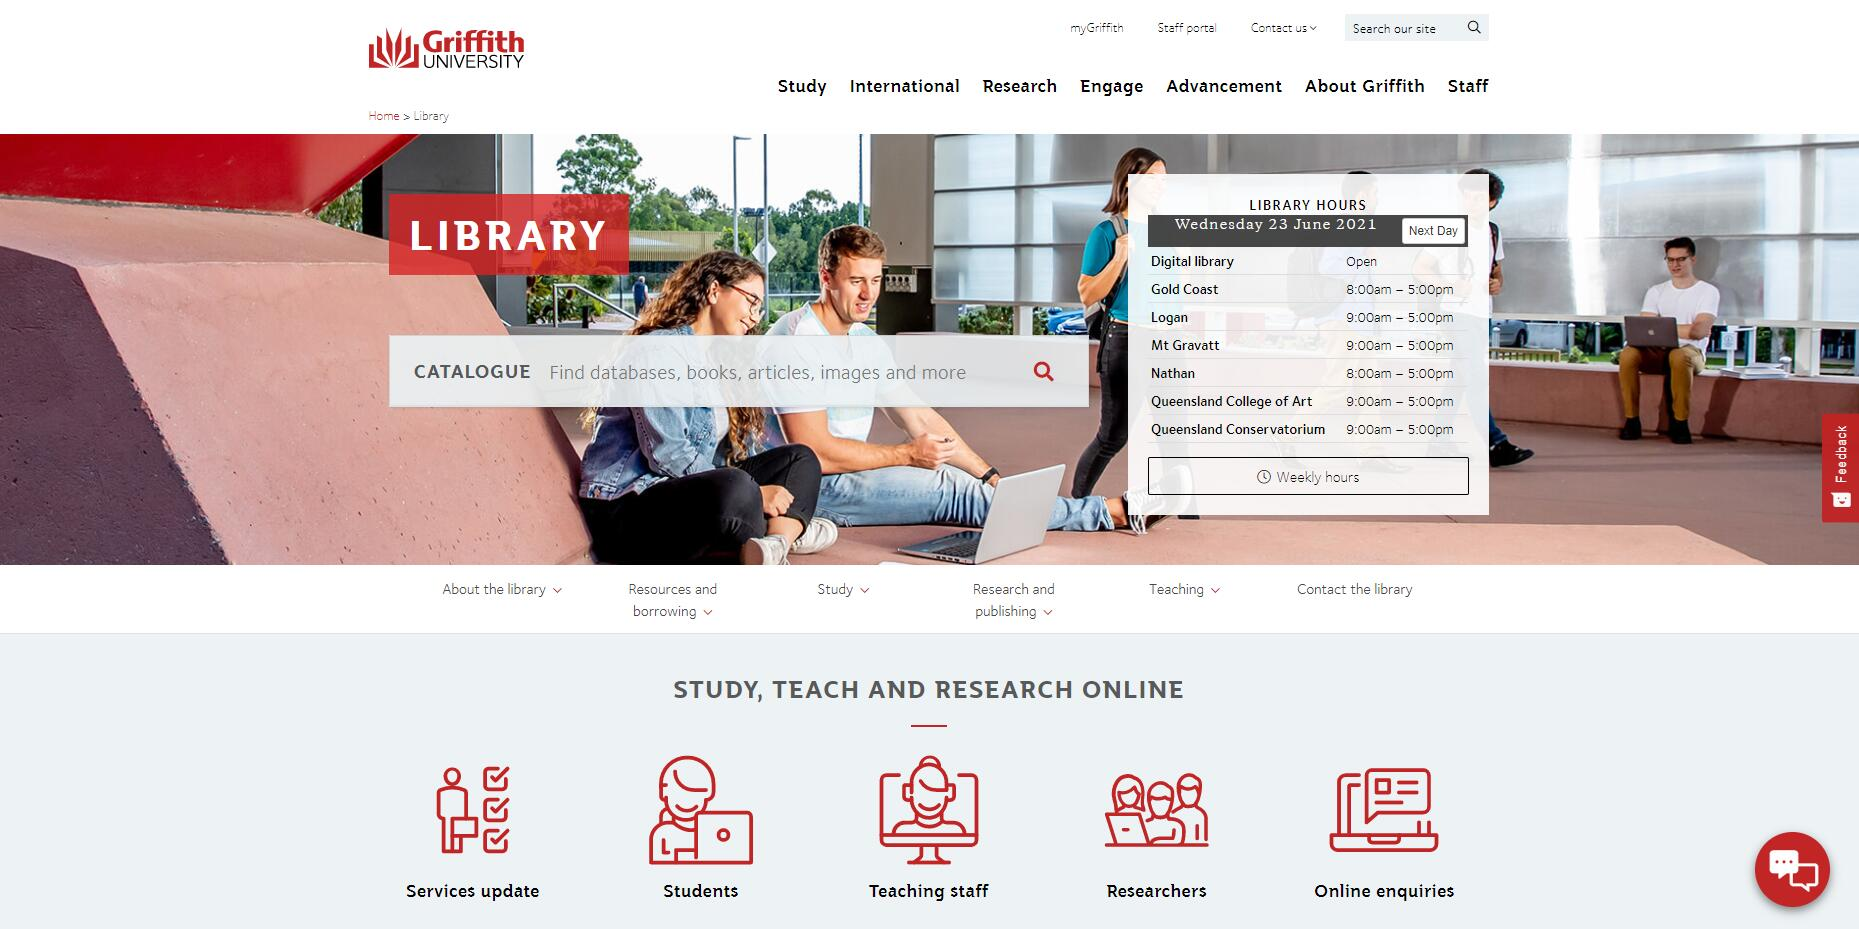 Library - Griffith University